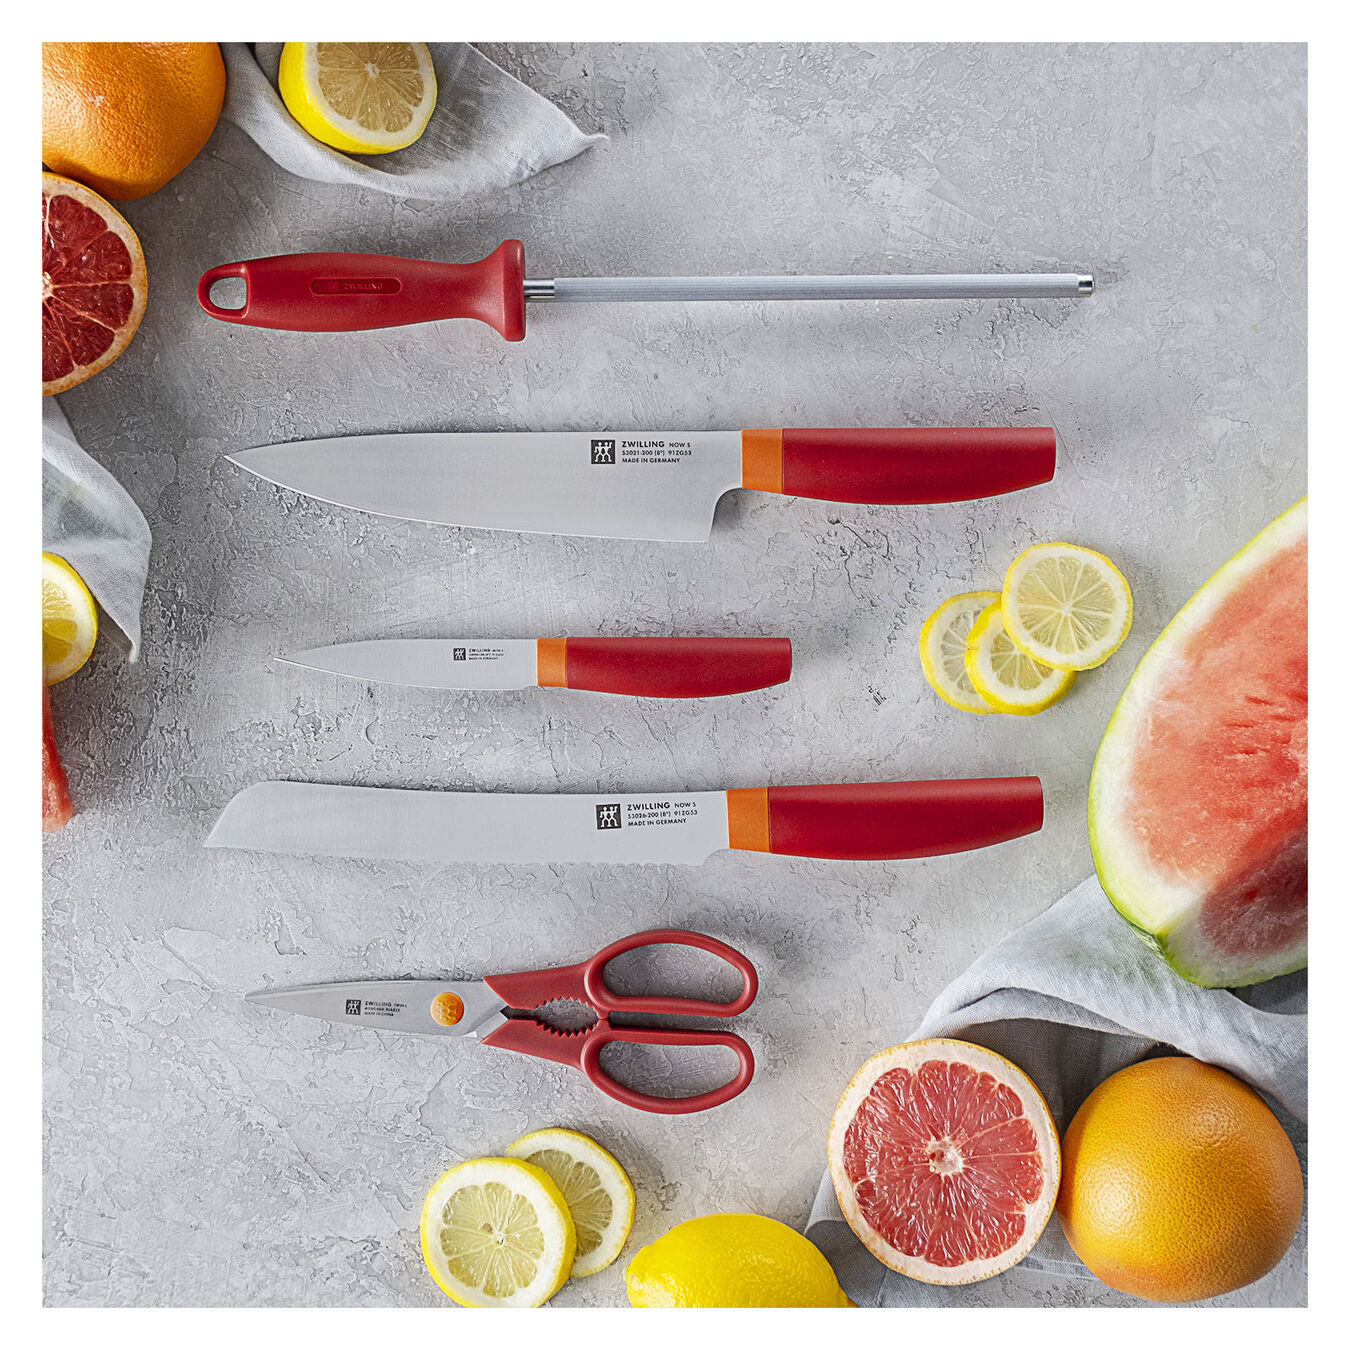 8-pc Knife Block Set - Grenada Orange,,large 4